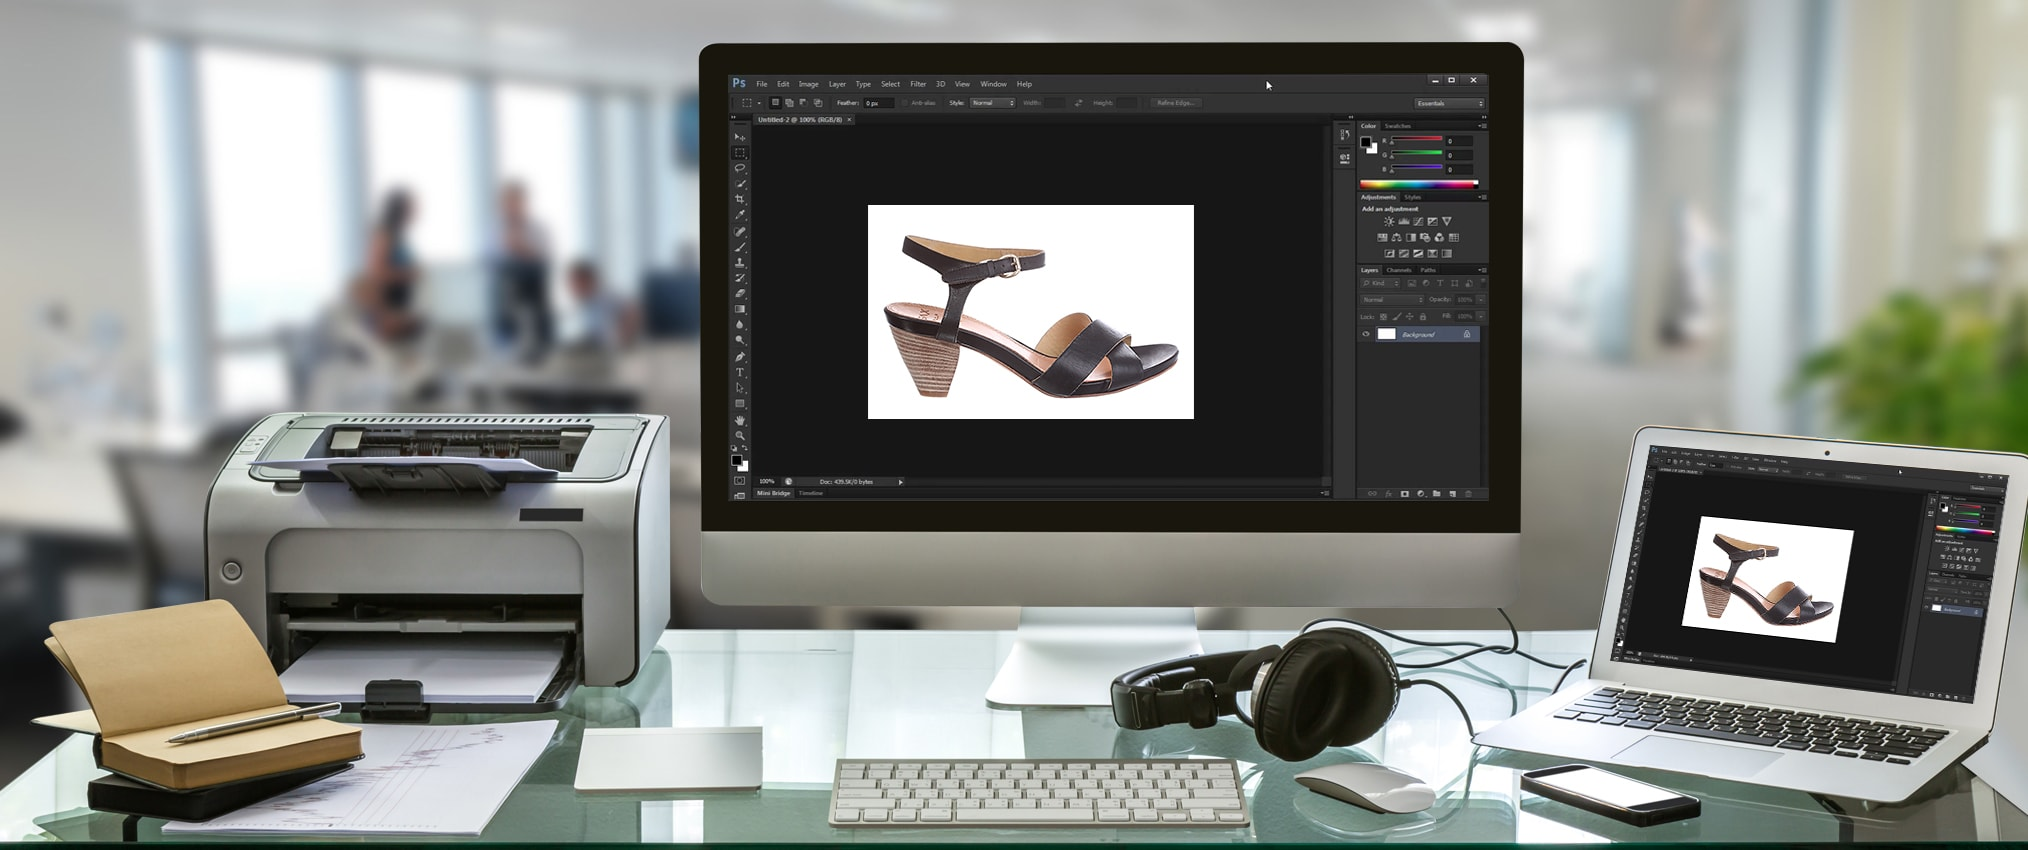 Why Should You Prefer Photo Clipping?